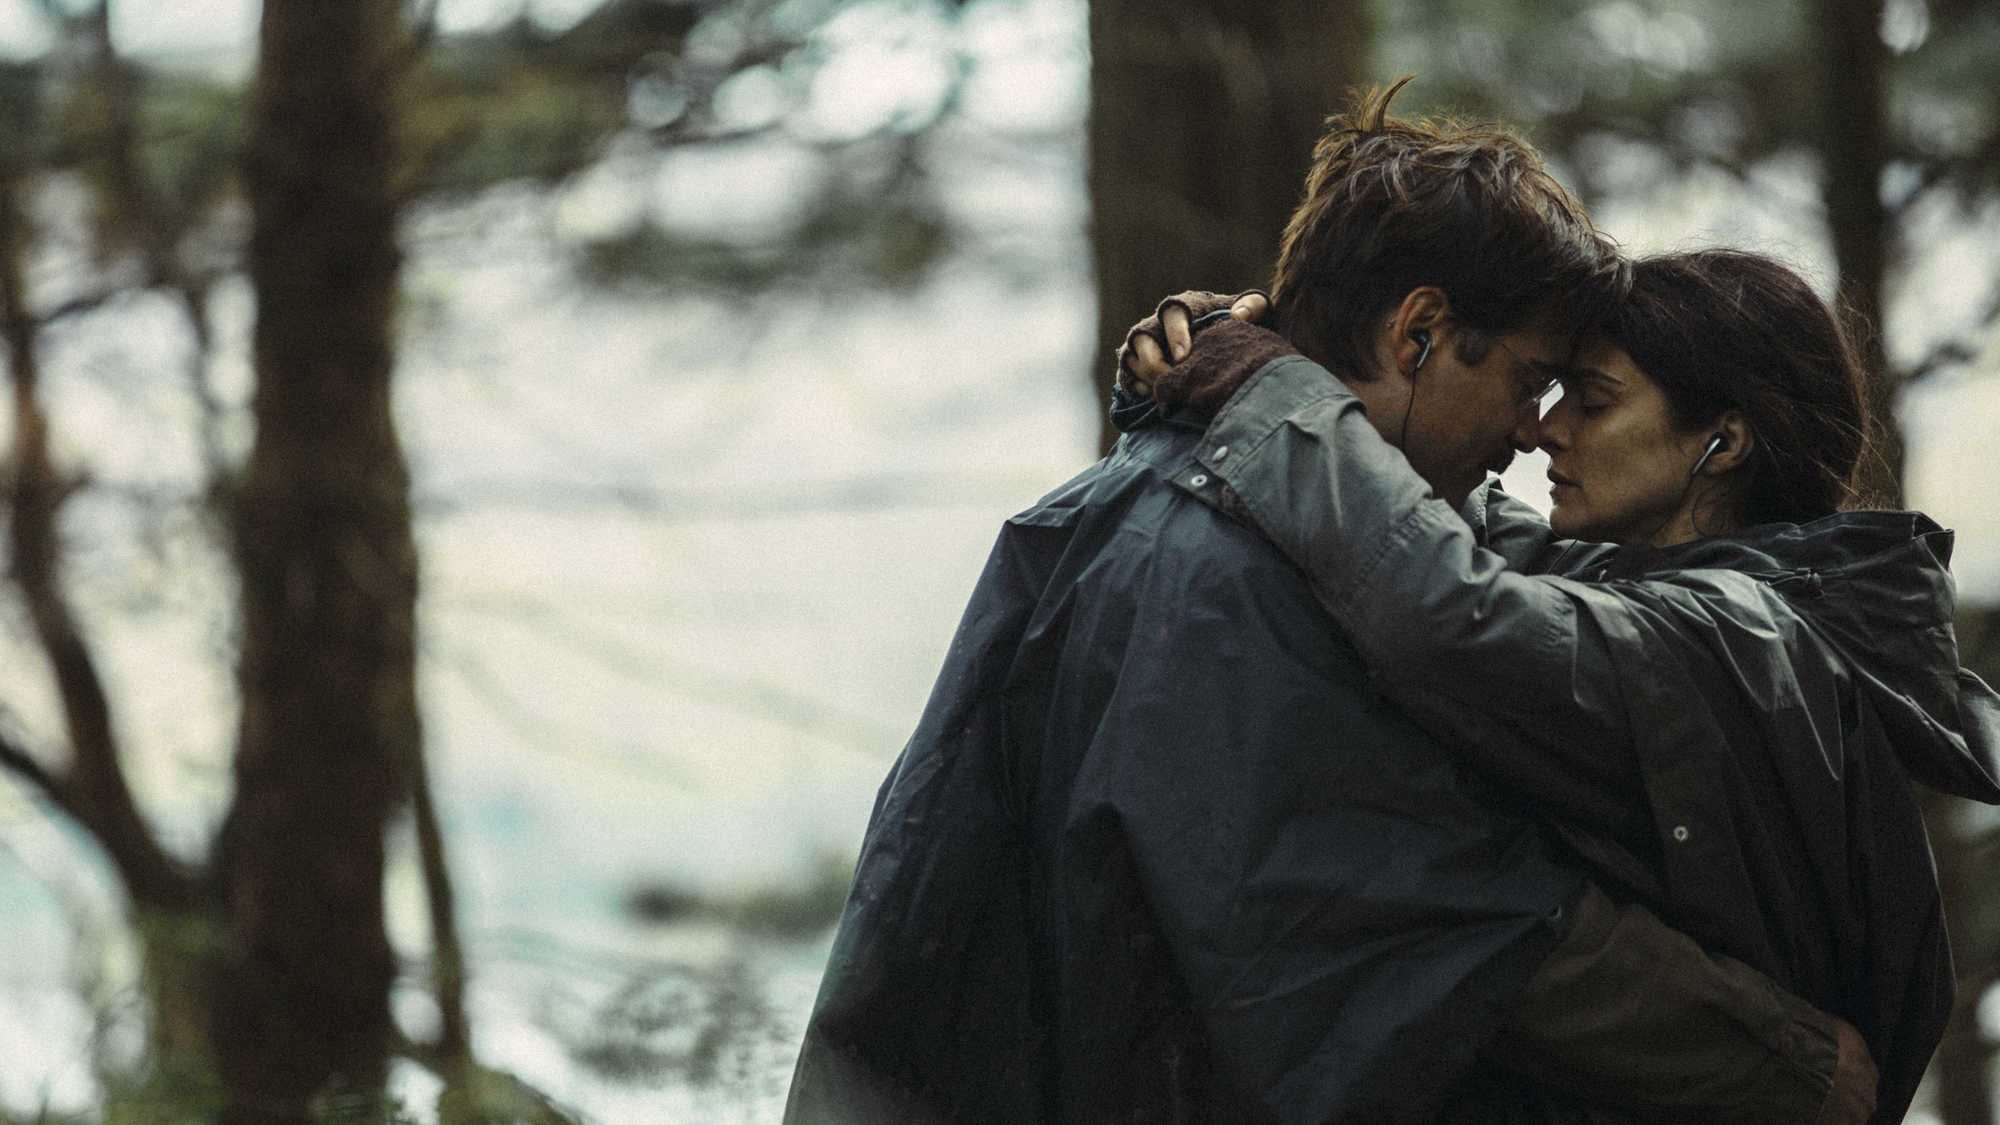 The Lobster (image 3)